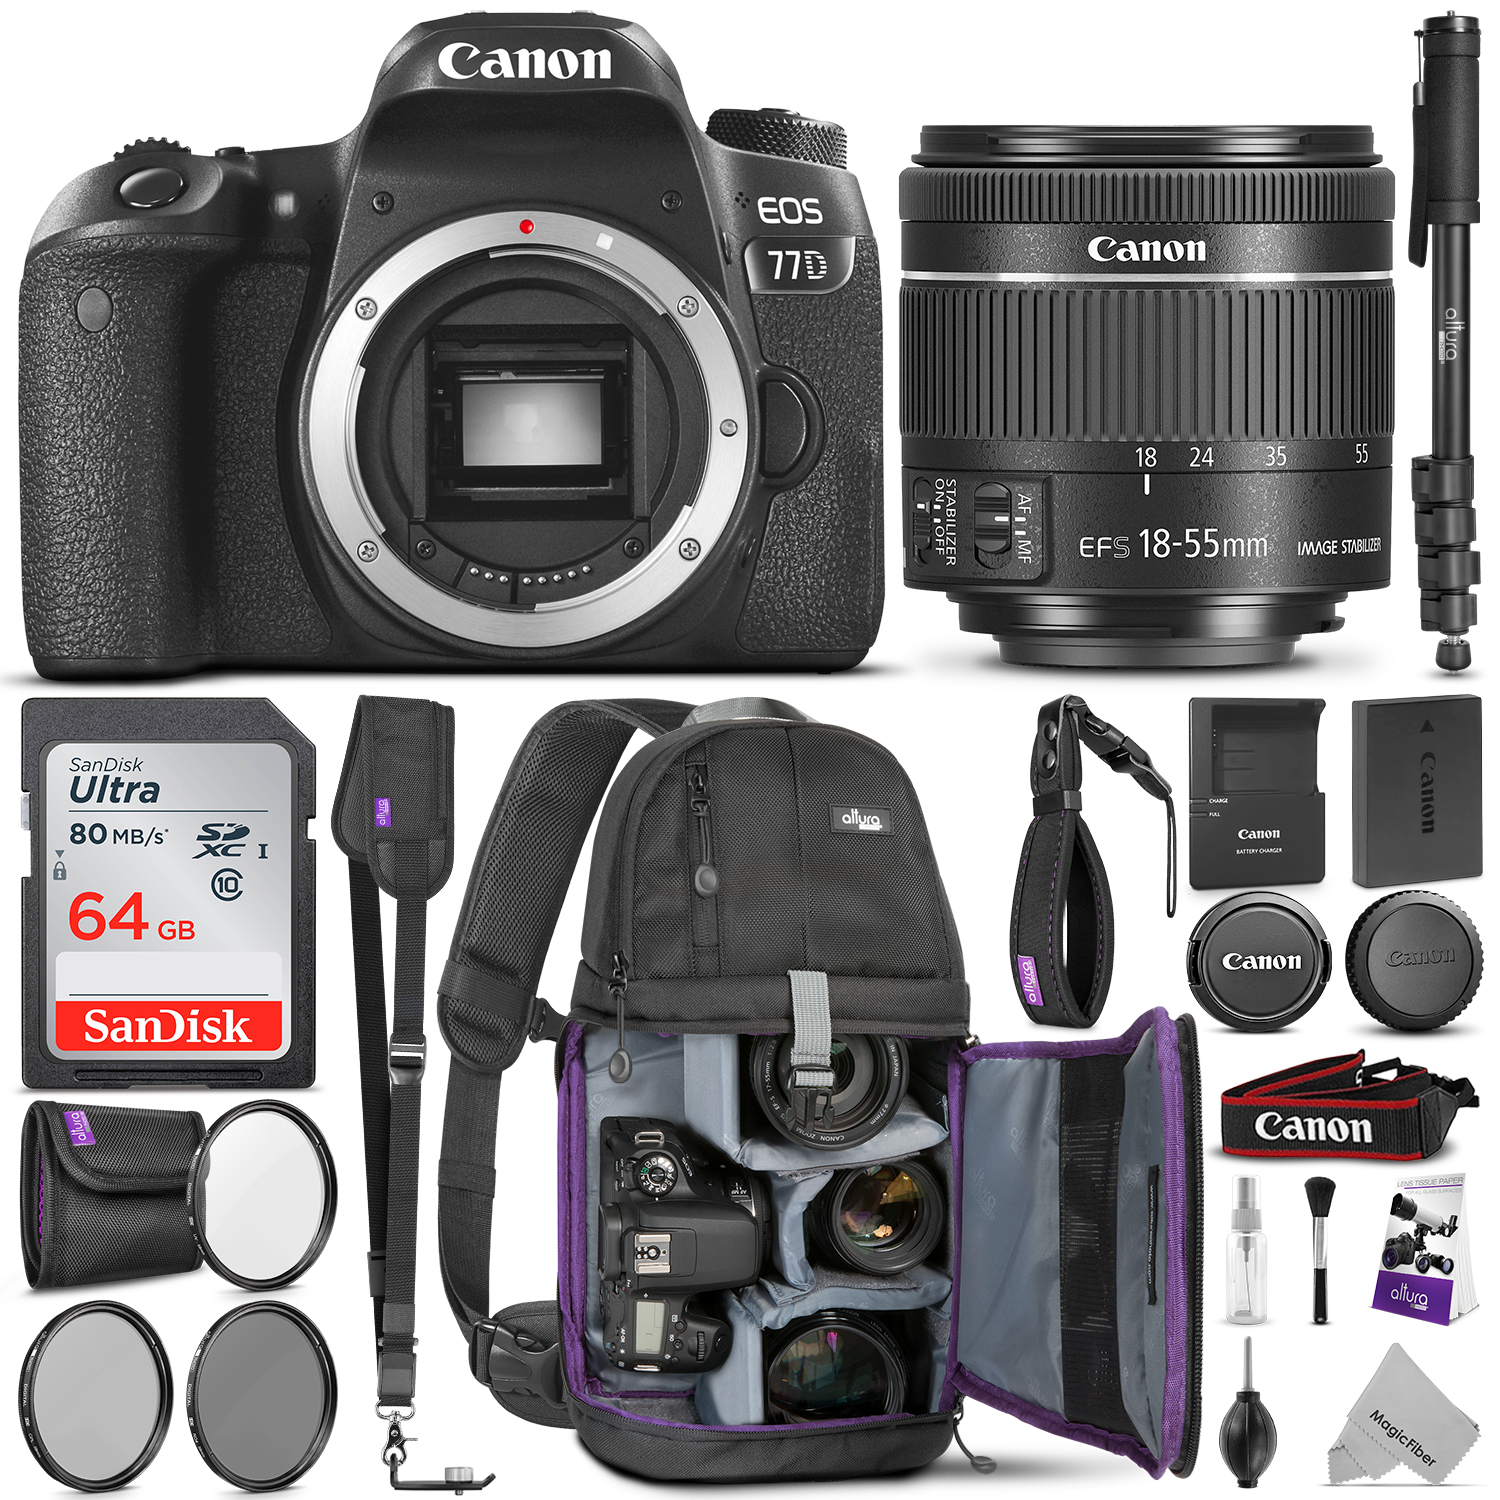 Canon EOS 77D DSLR Camera with 18-55mm is STM Lens w/Advanced Photo & Travel Bundle - Includes: Canon USA Warranty, Altura Photo Backpack, SanDisk 64gb SD Card, Monopod, Filter Kit, Neck Strap